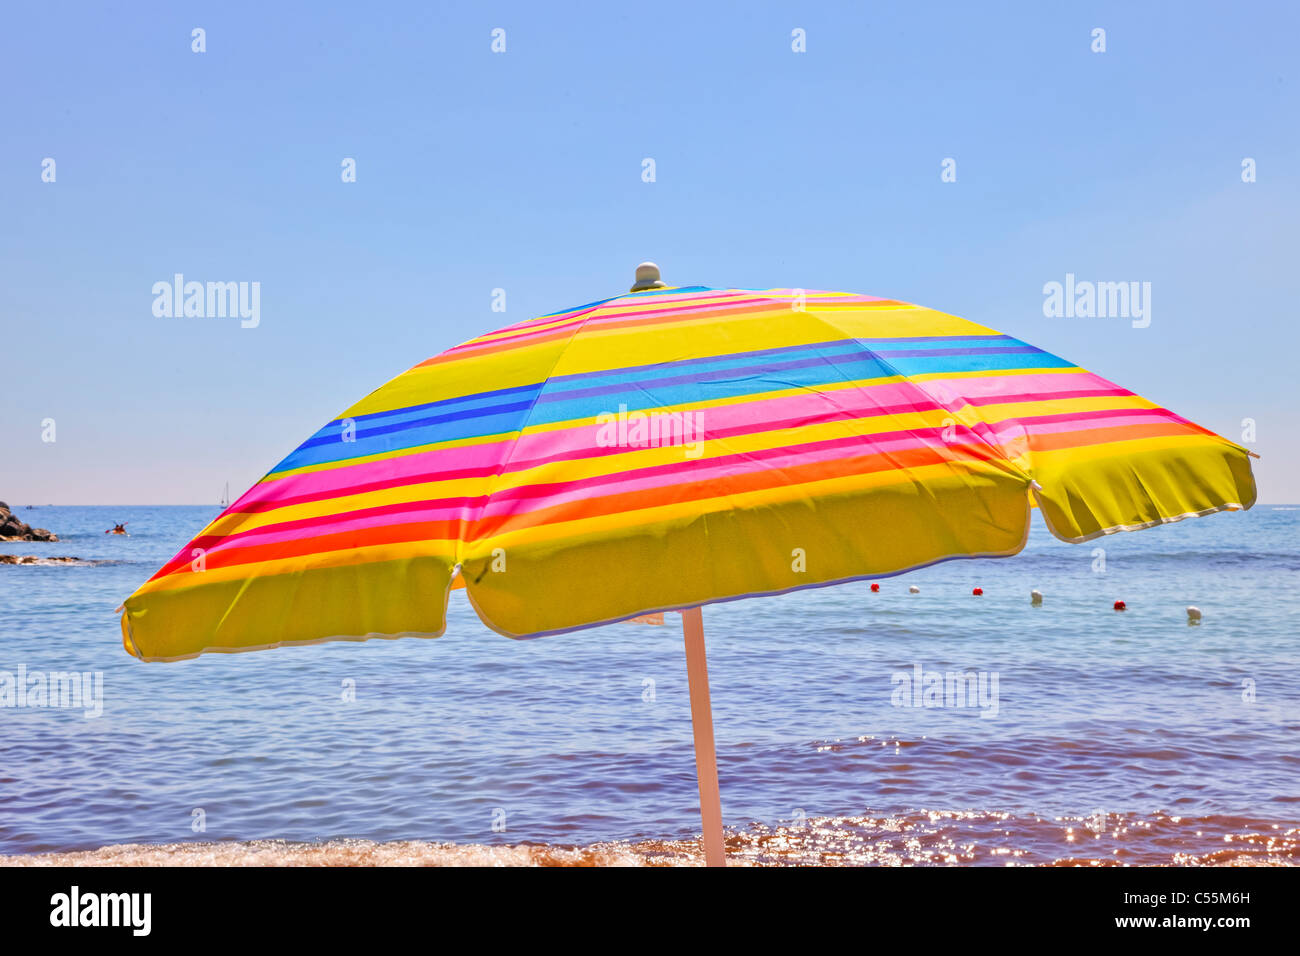 a parasol in the sun of Italy - Stock Image